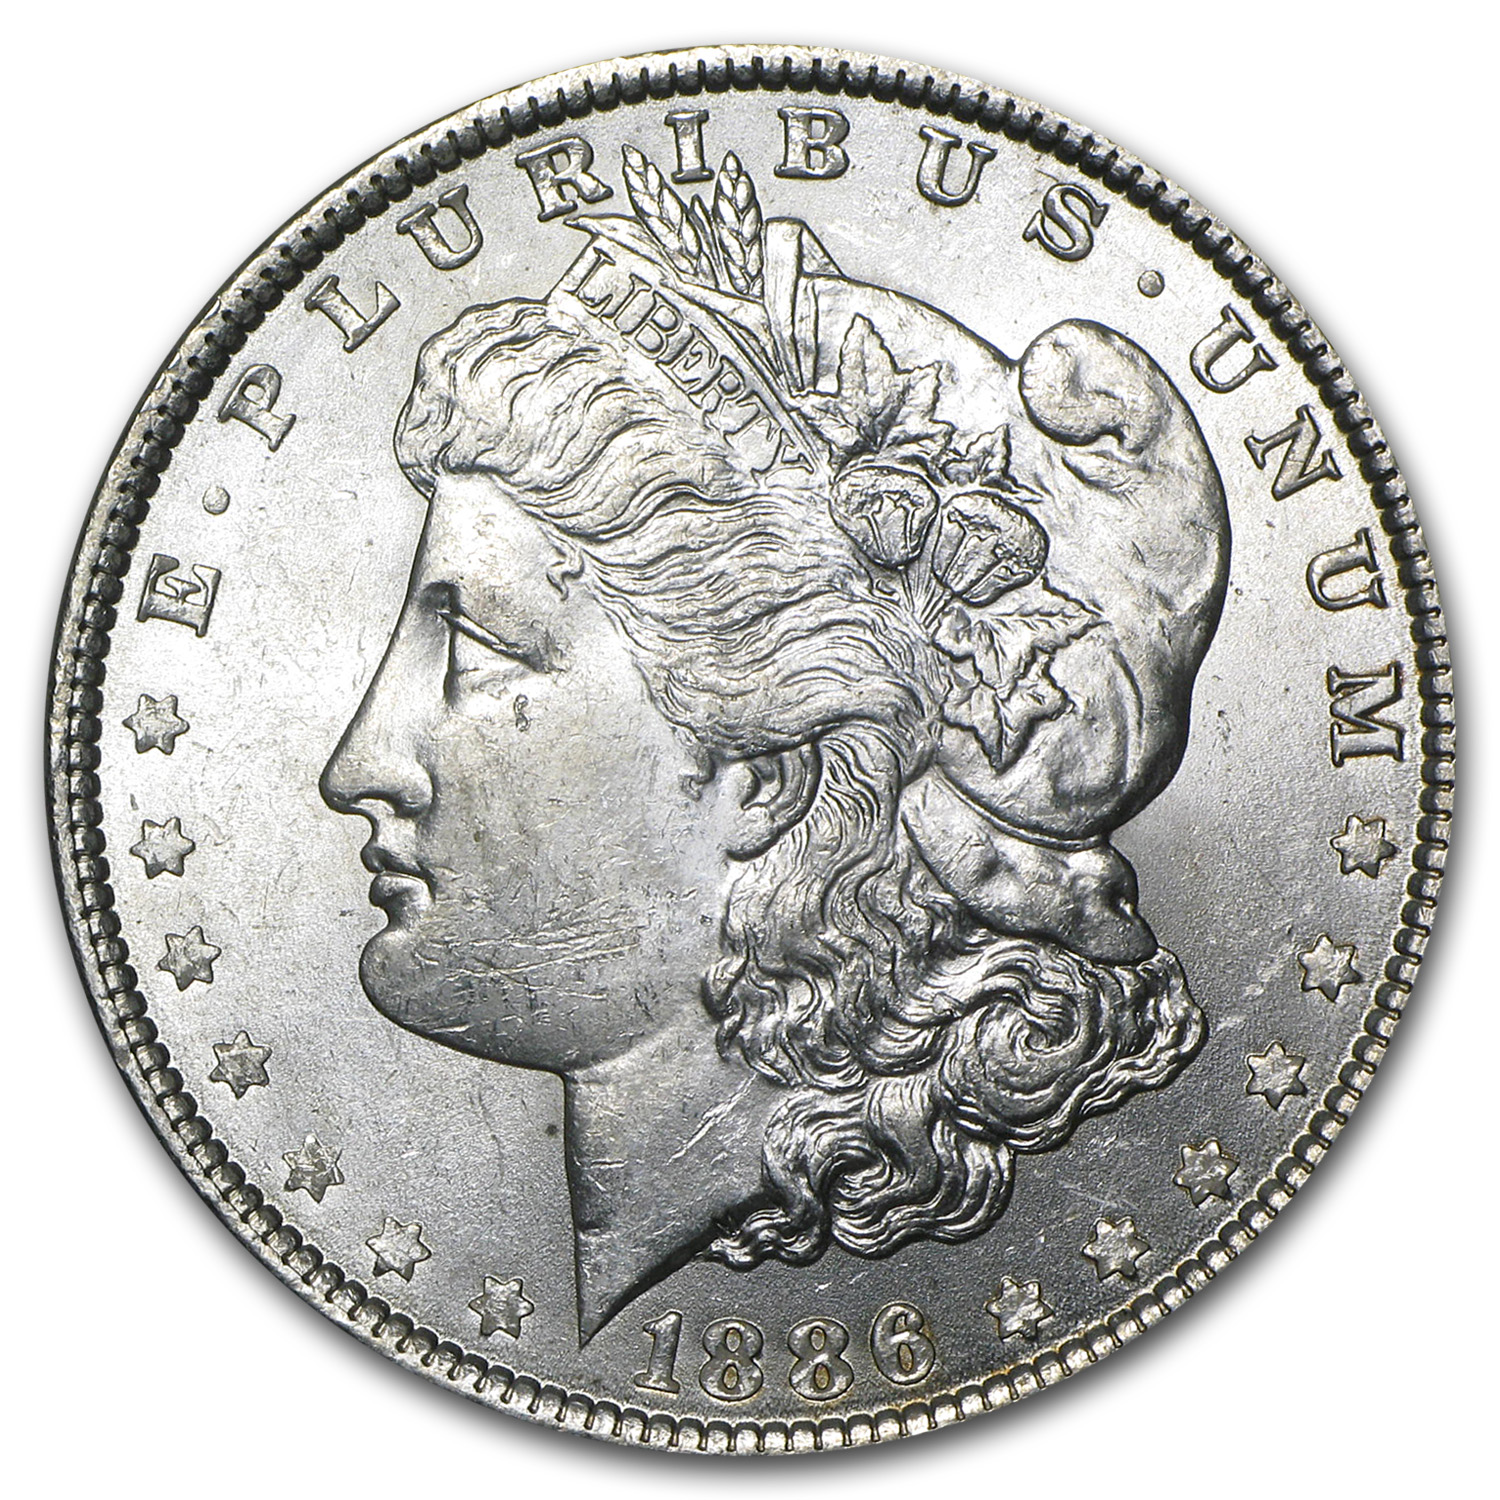 1886 Morgan Silver Dollar BU